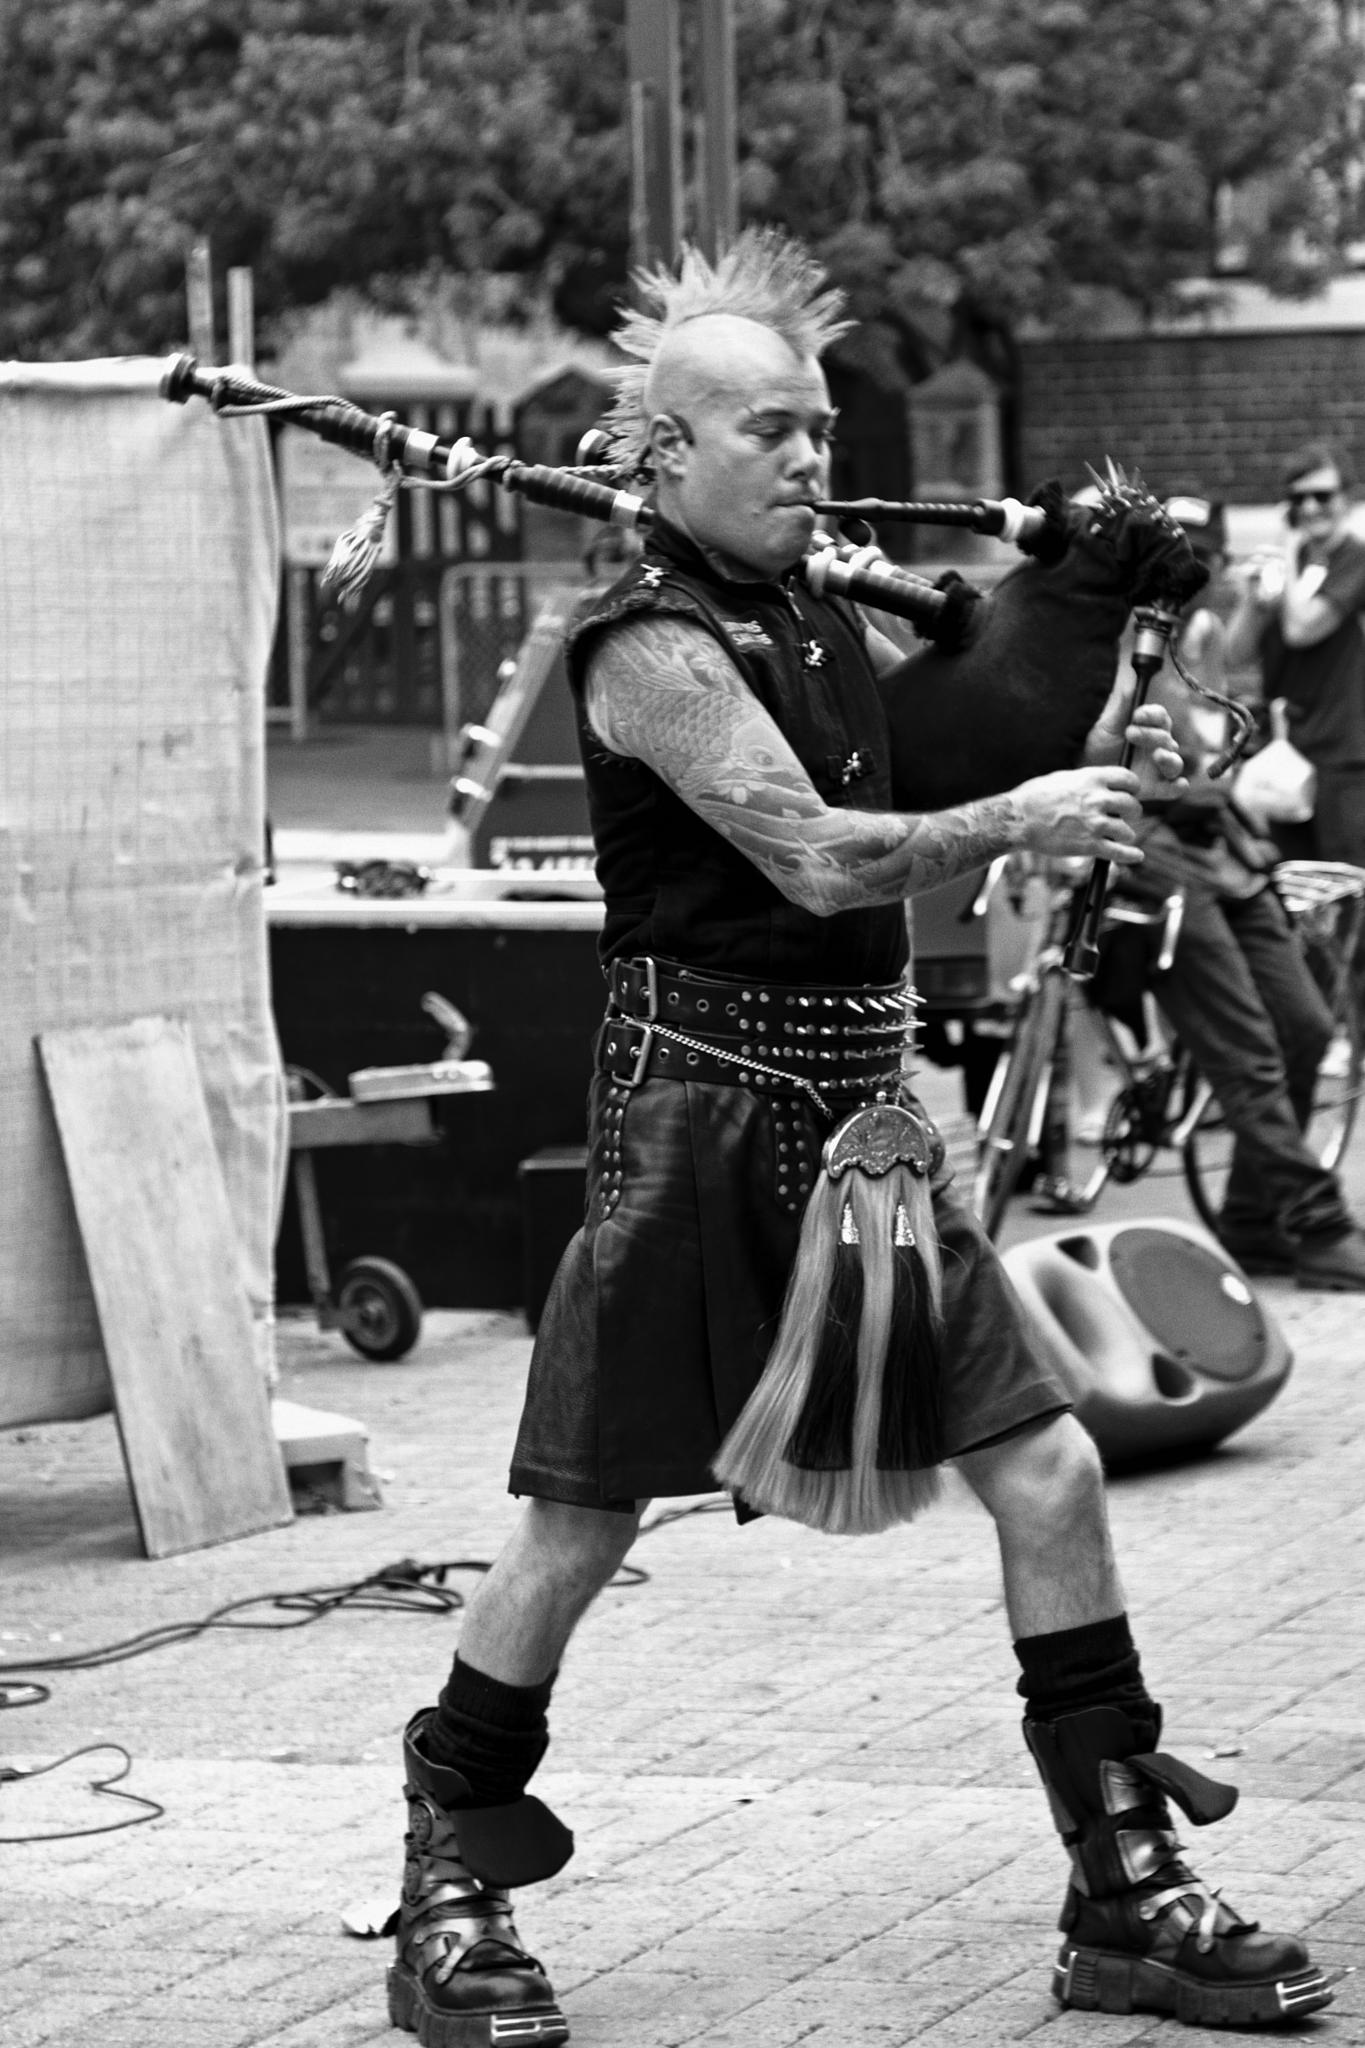 AC/DC Bagpipe Street Musician by Tony Shaw